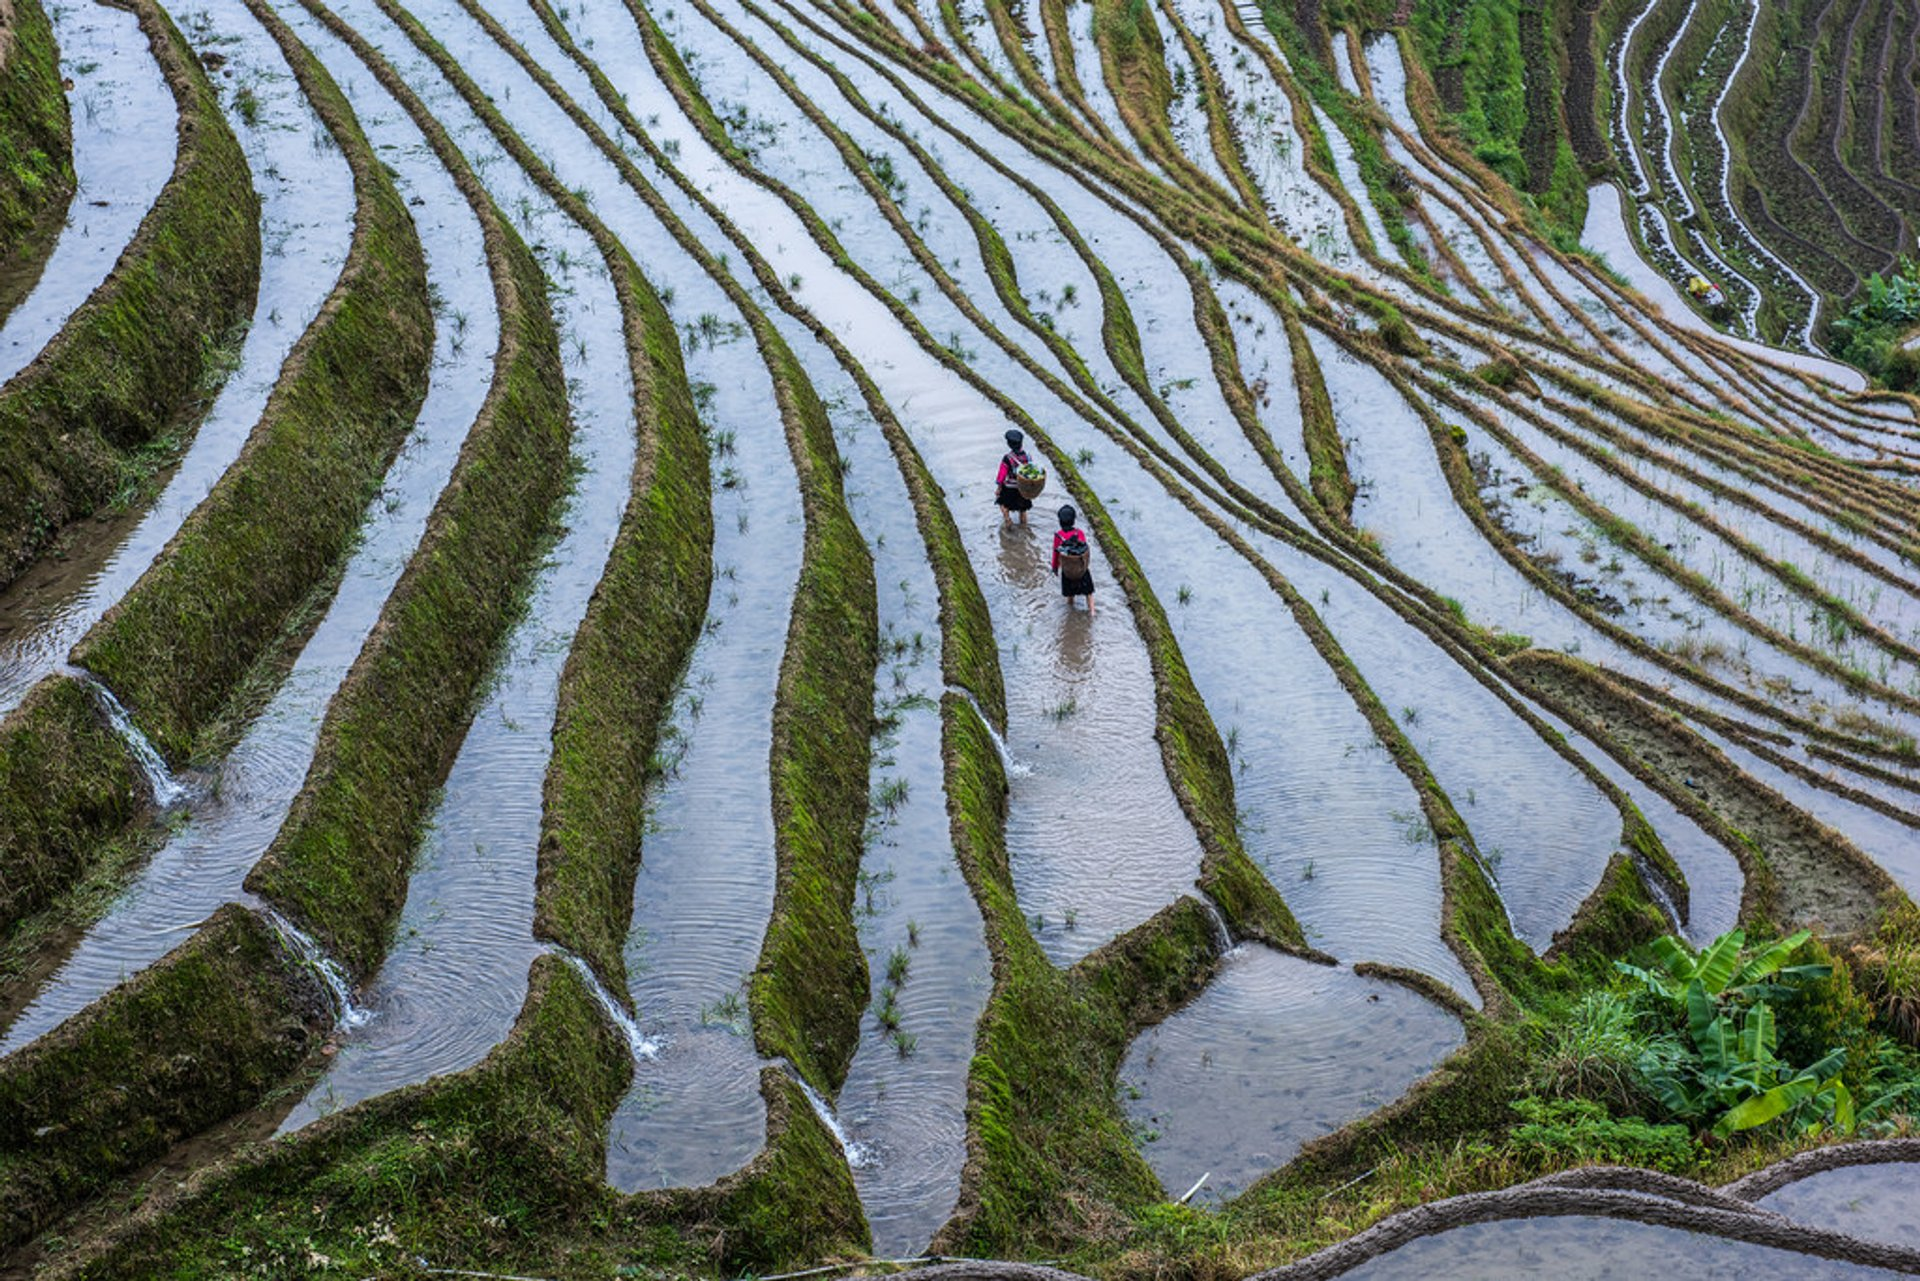 Best time for Longsheng (Longji) Rice Terraces in China 2020